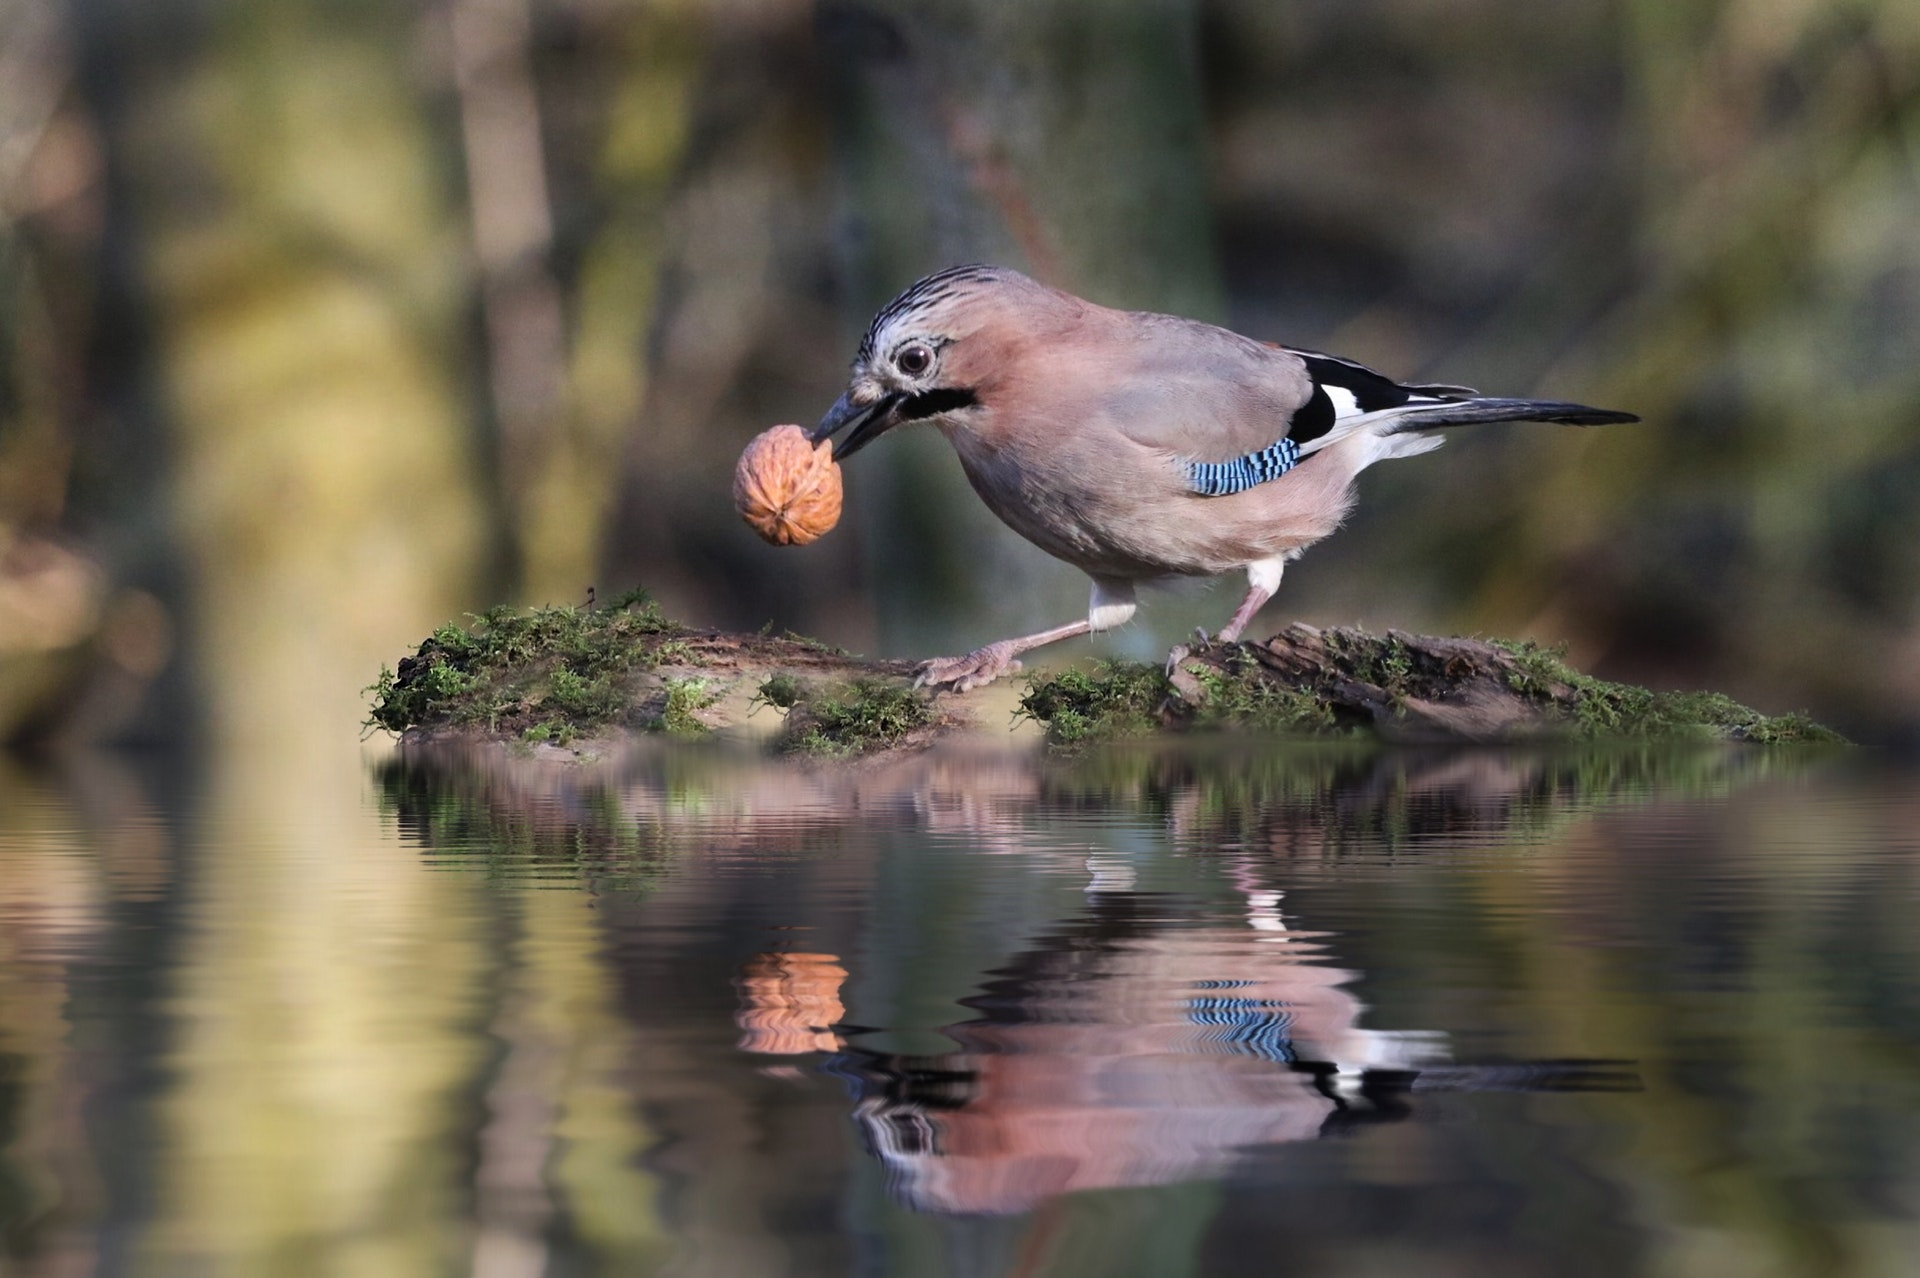 The meaning behind seeing a blue jay